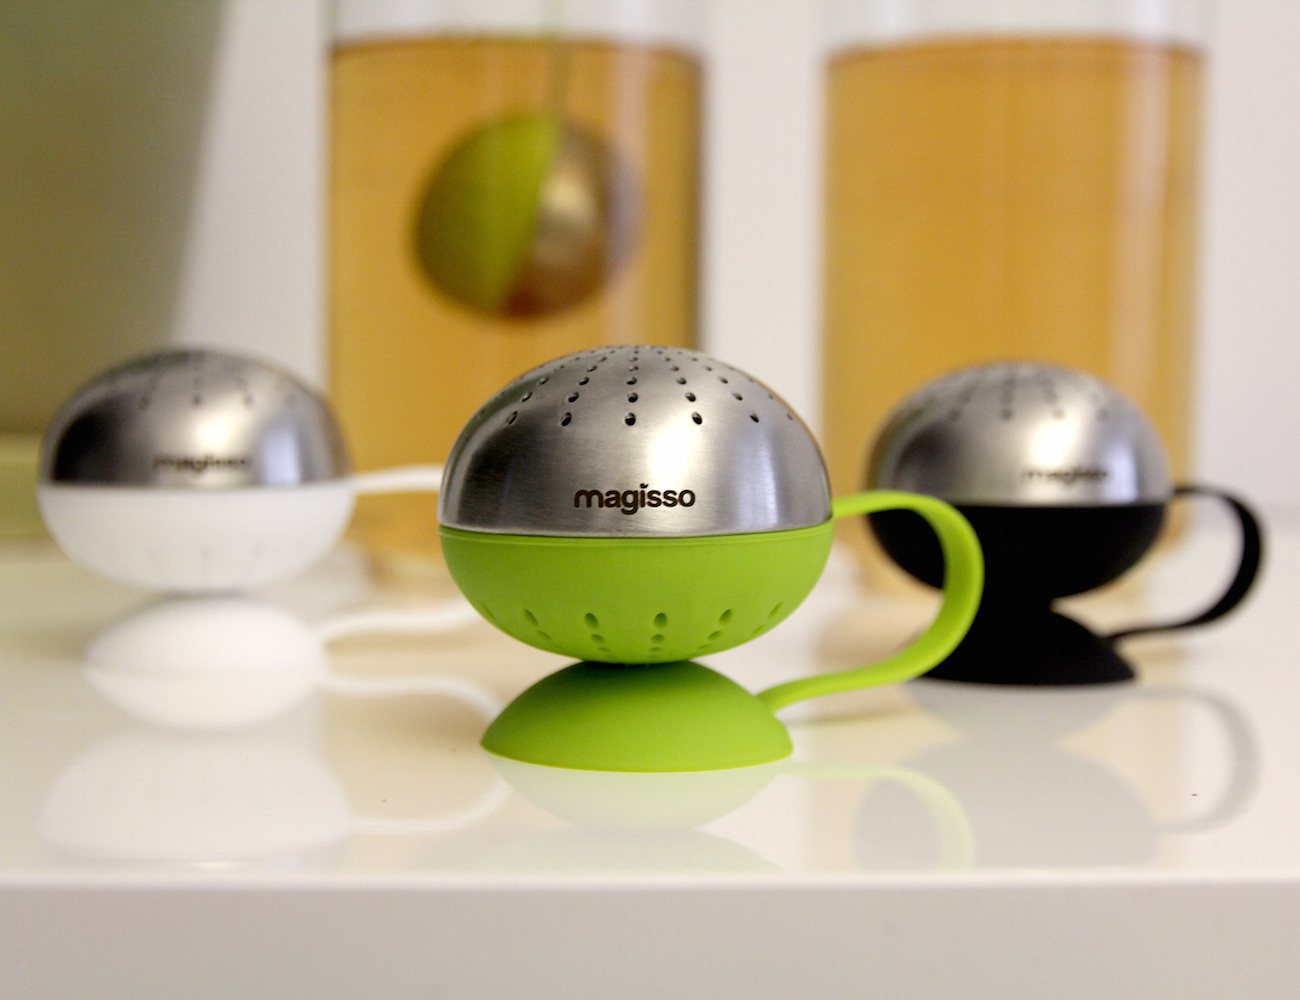 Magnetic Tea Egg – Tea Ball Infuser by Magisso